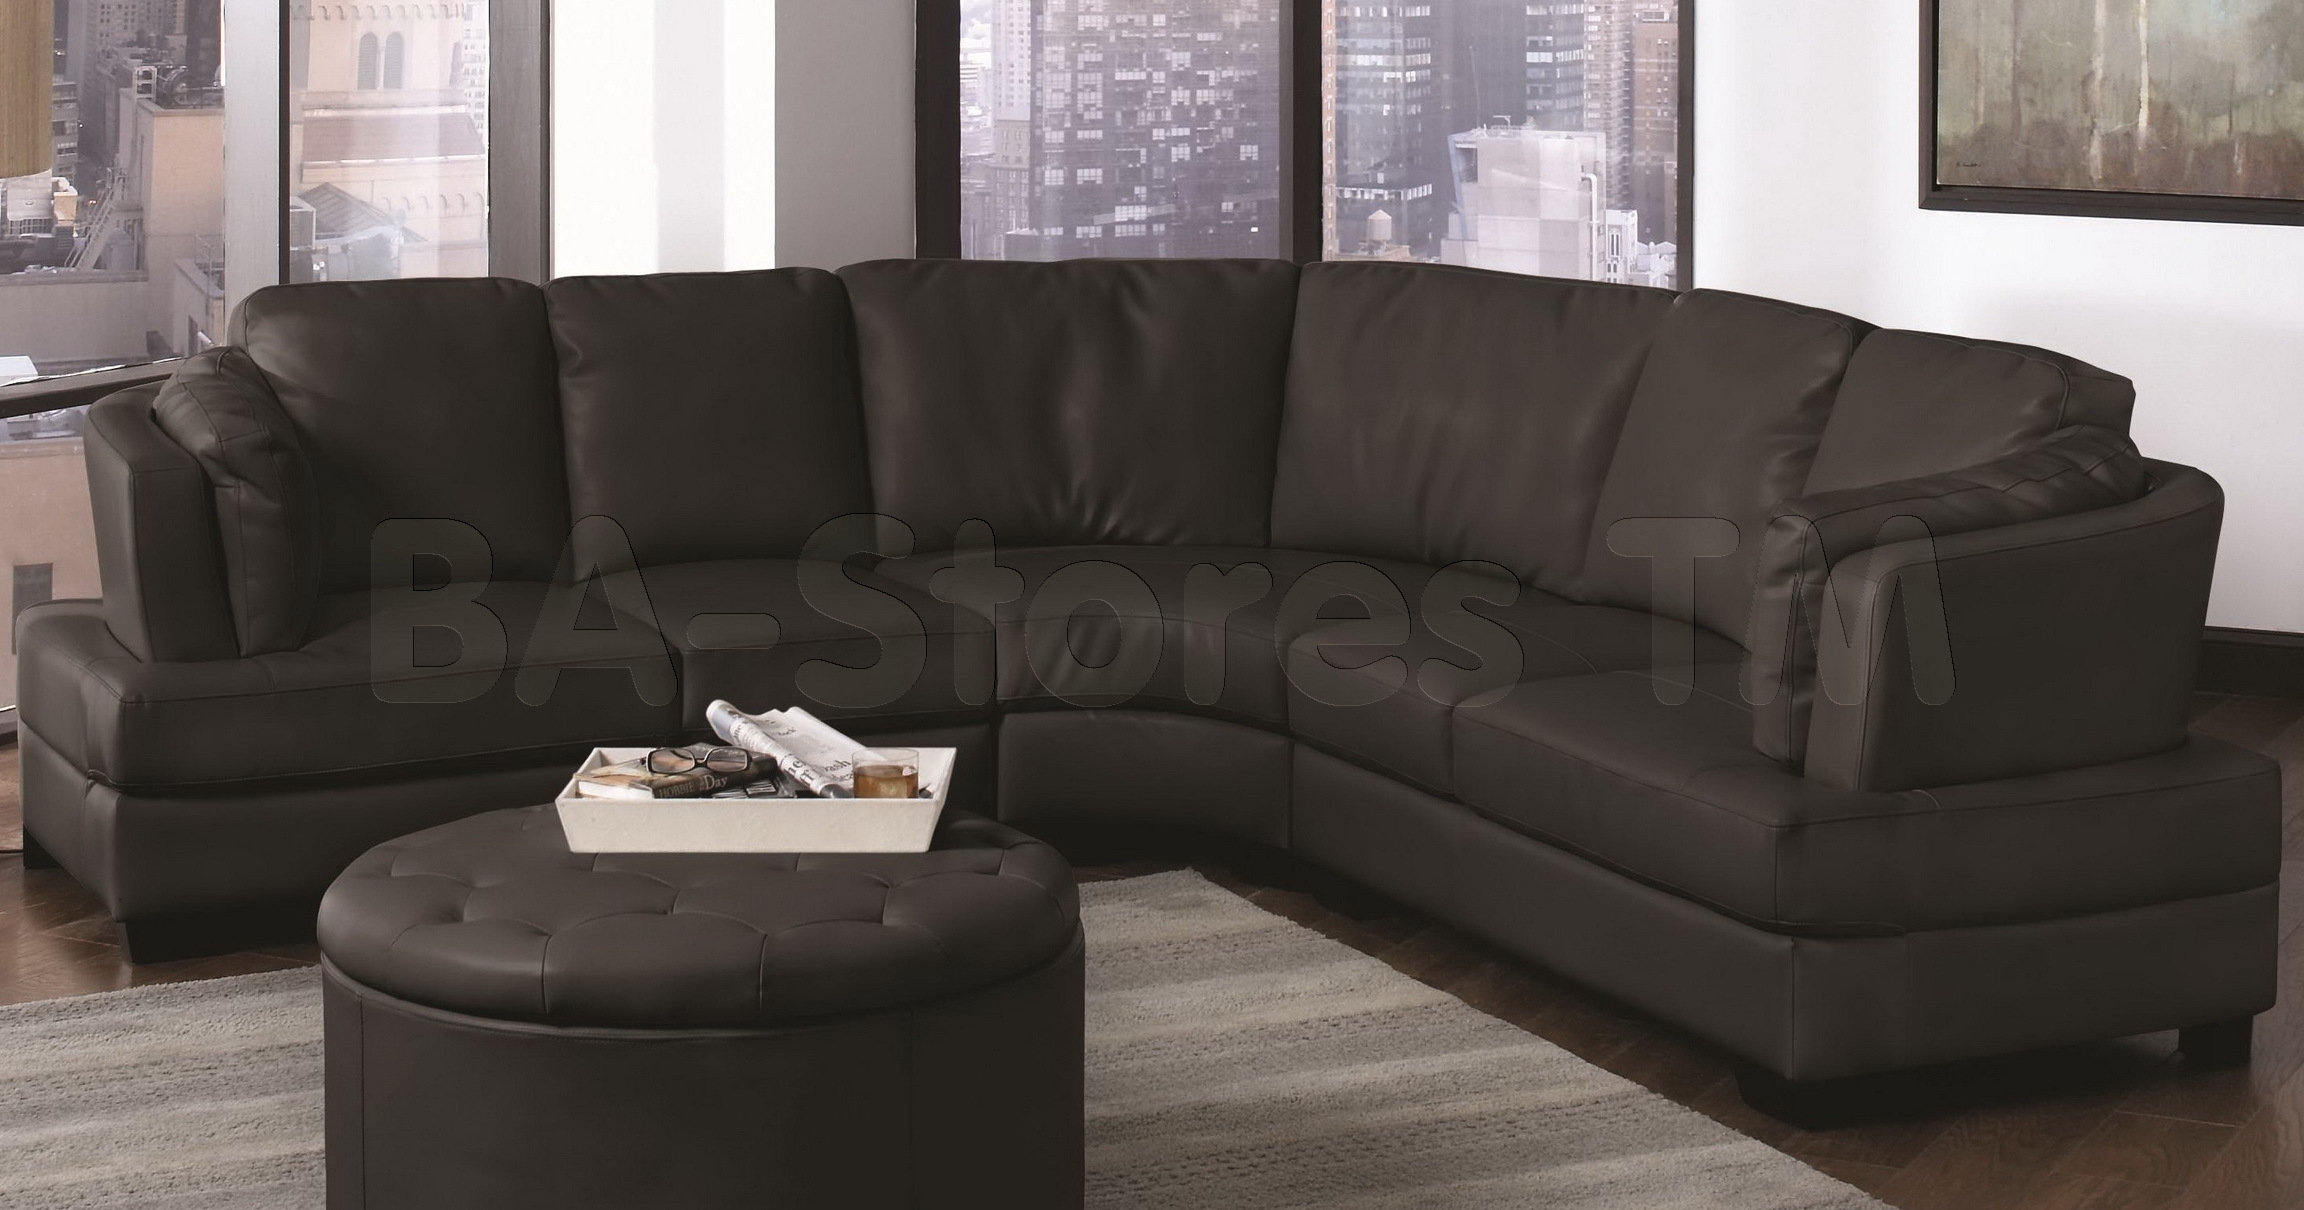 Sectional Sofa : Curved Corner Sectional Sofa Contemporary Pertaining To Rounded Corner Sectional Sofas (View 6 of 10)